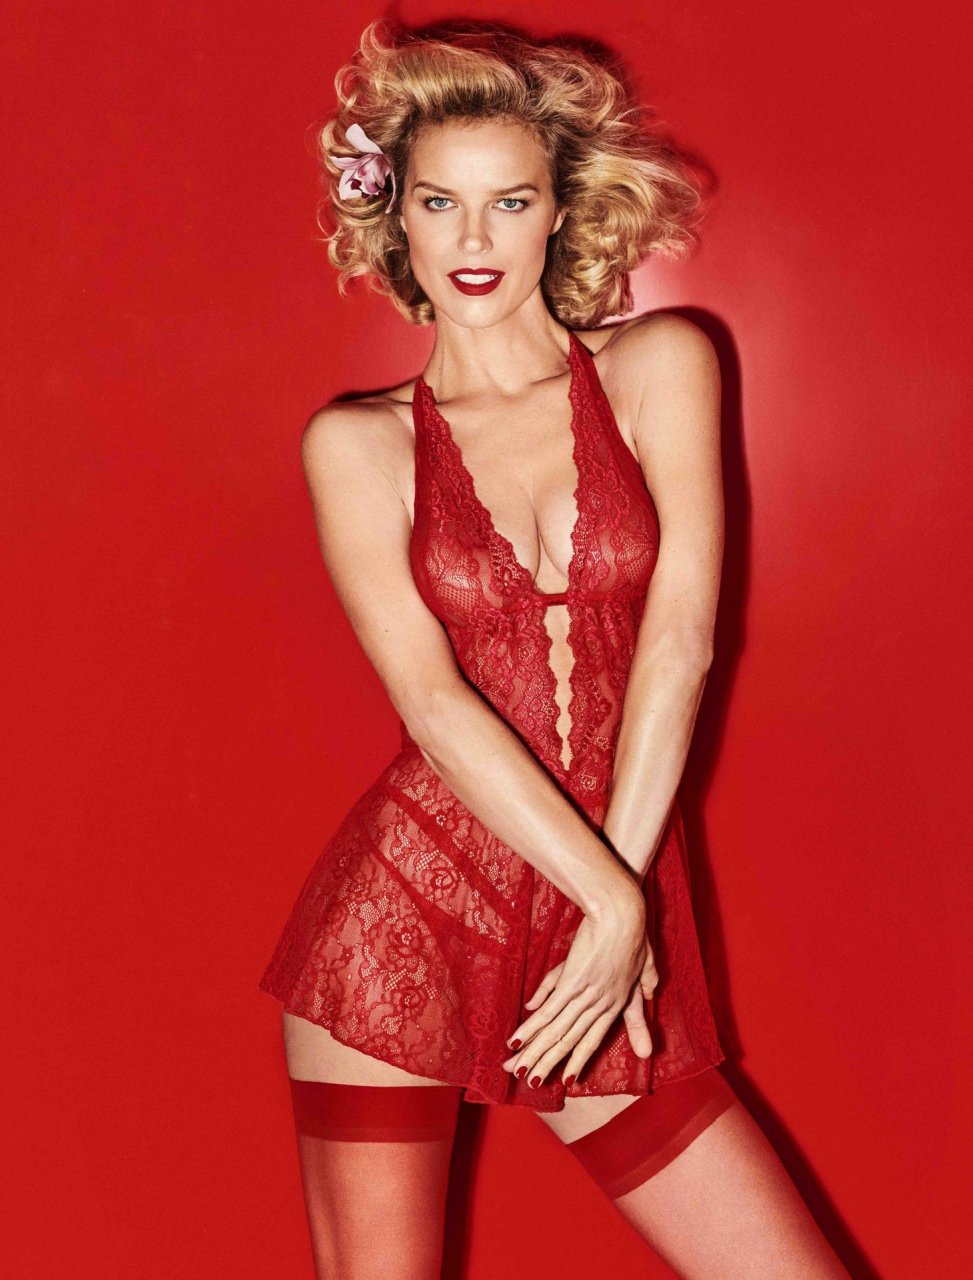 Something Eva herzigova porn